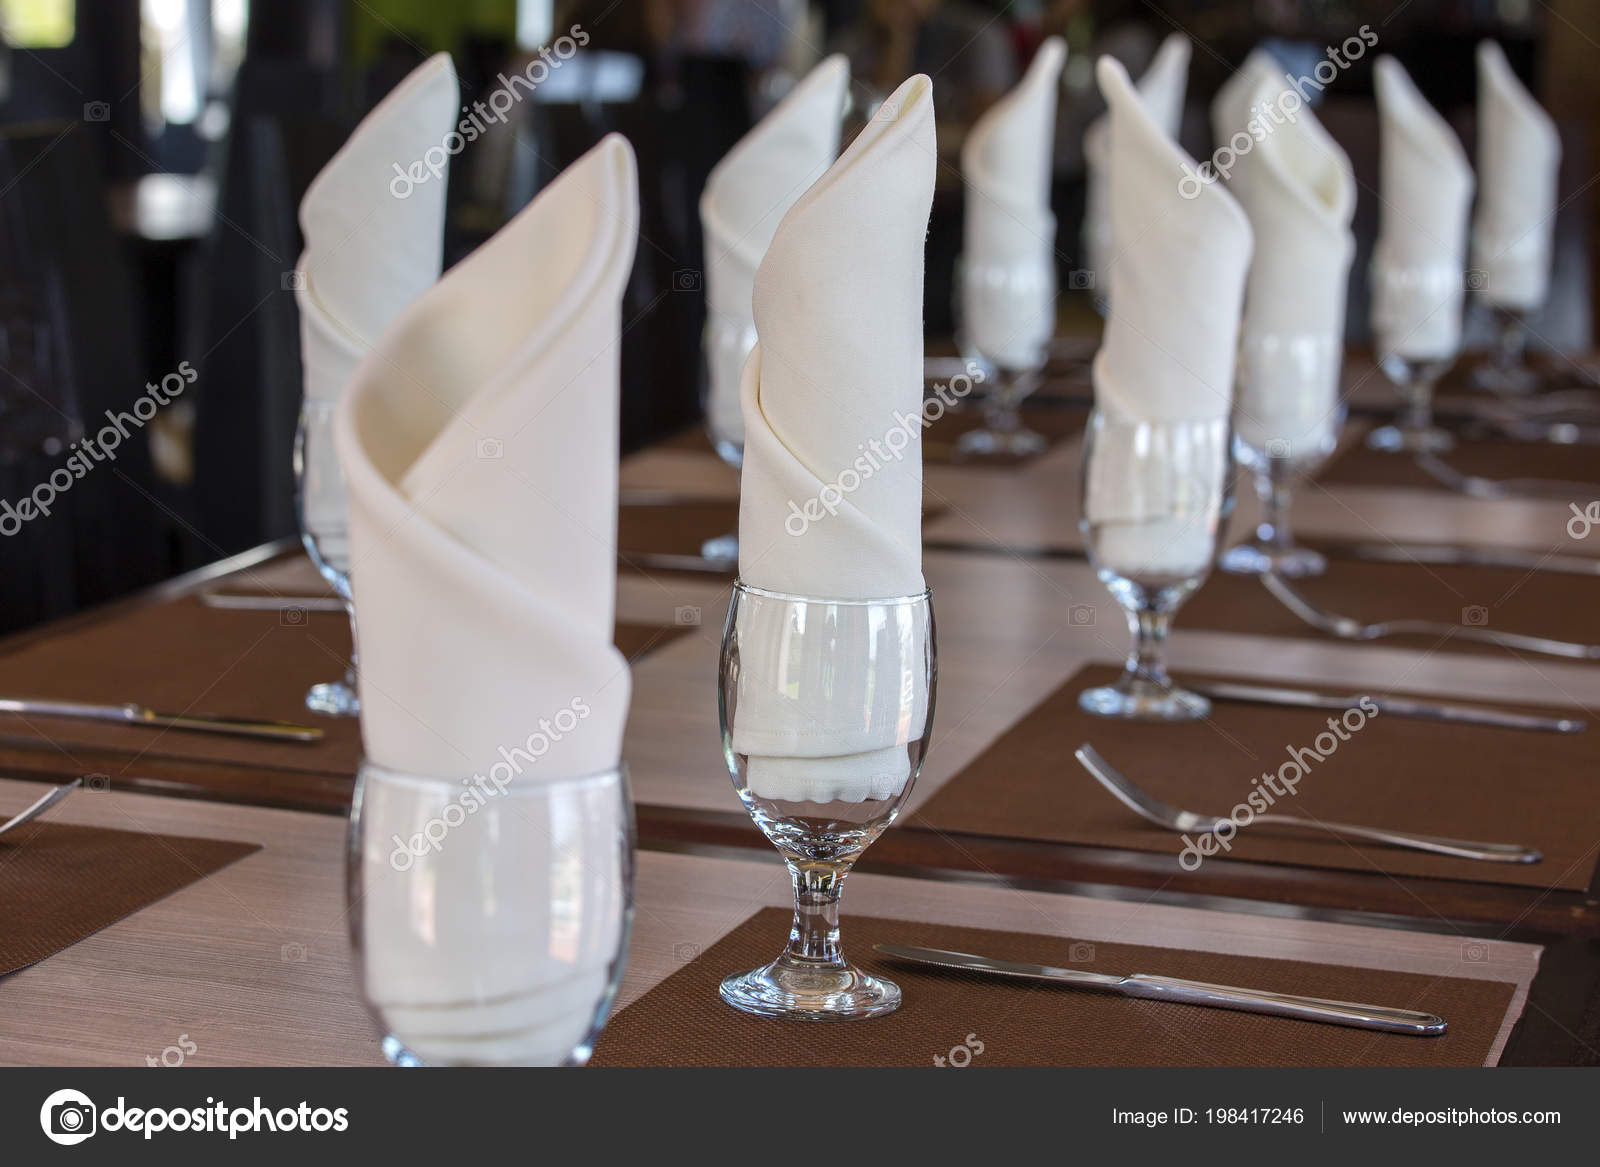 Glasses Napkin Table Restaurant Food Background Table Arrangement